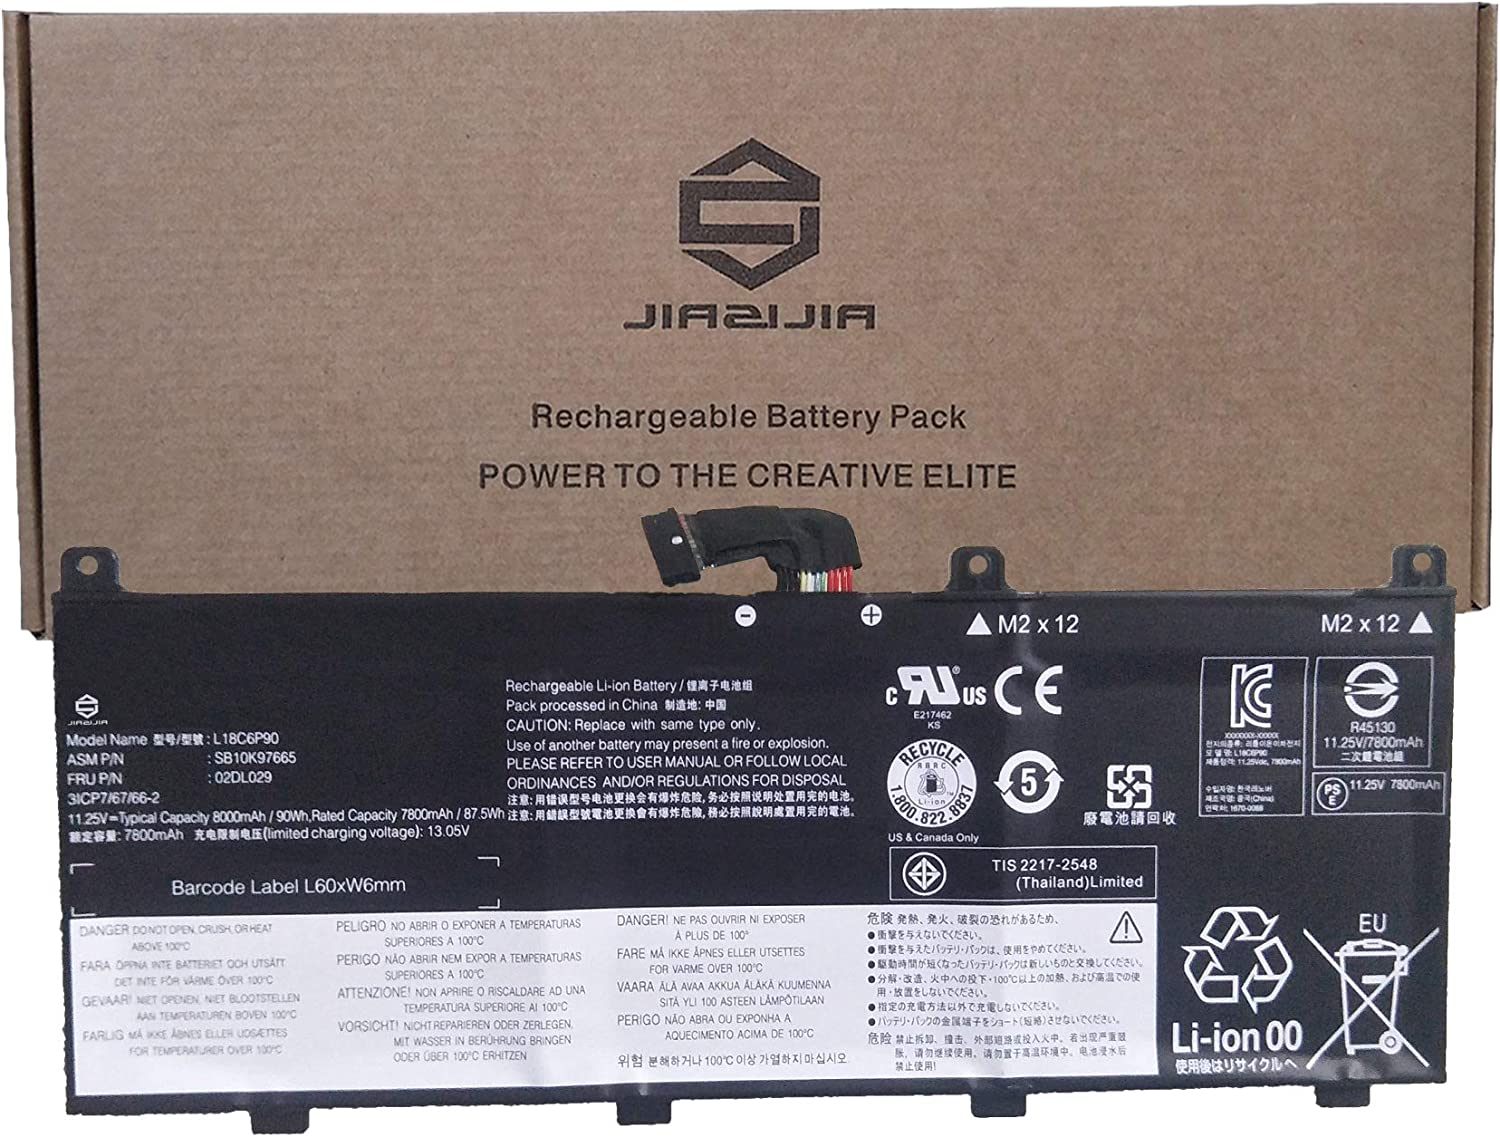 JIAZIJIA 02DL029 Max 74% OFF Laptop Battery ThinkPad for Replacement Lenovo Popular brand